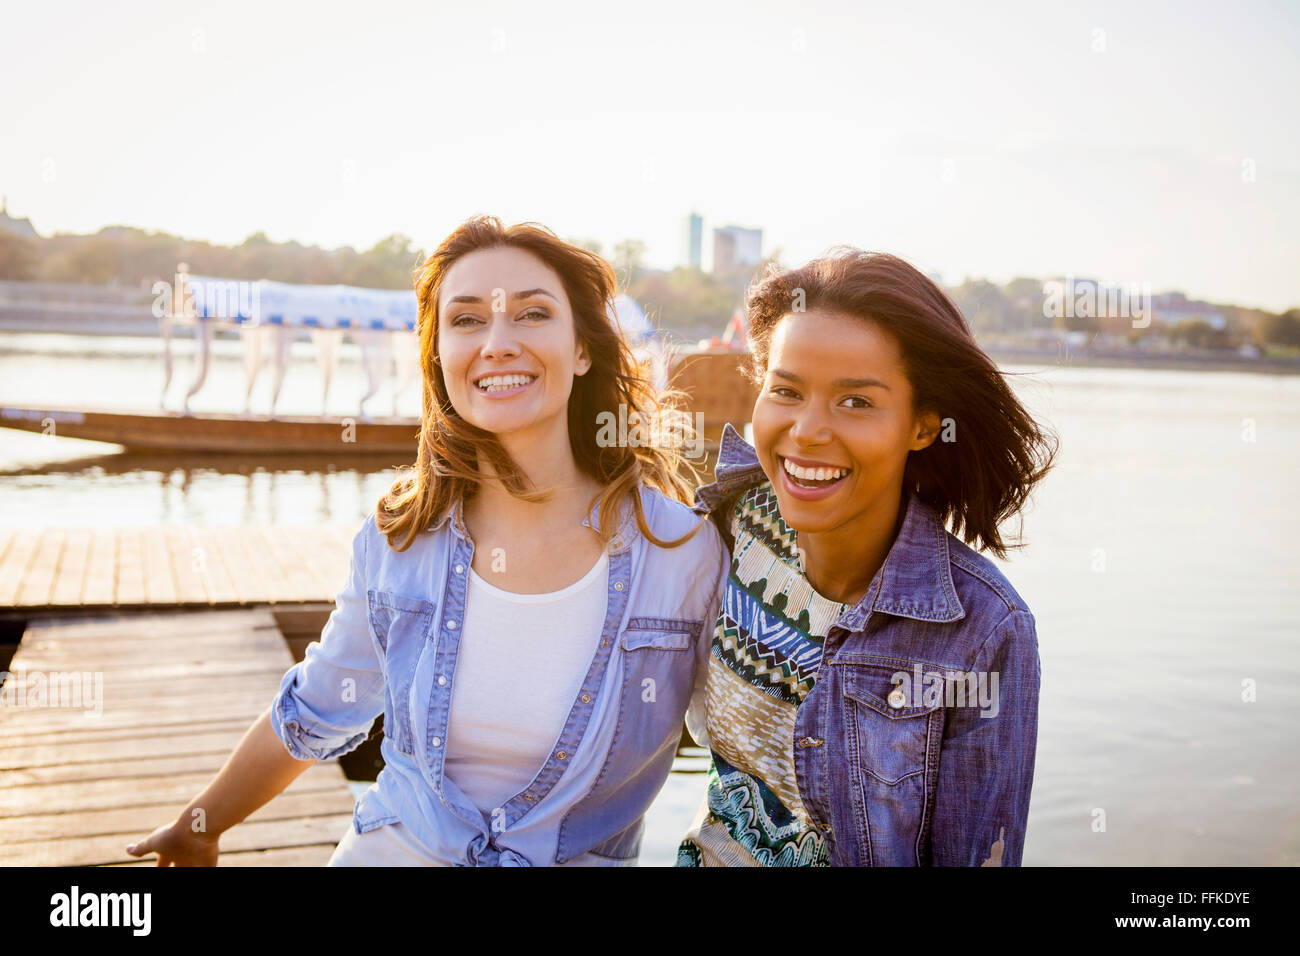 Portrait of two women laughing on a city break - Stock Image